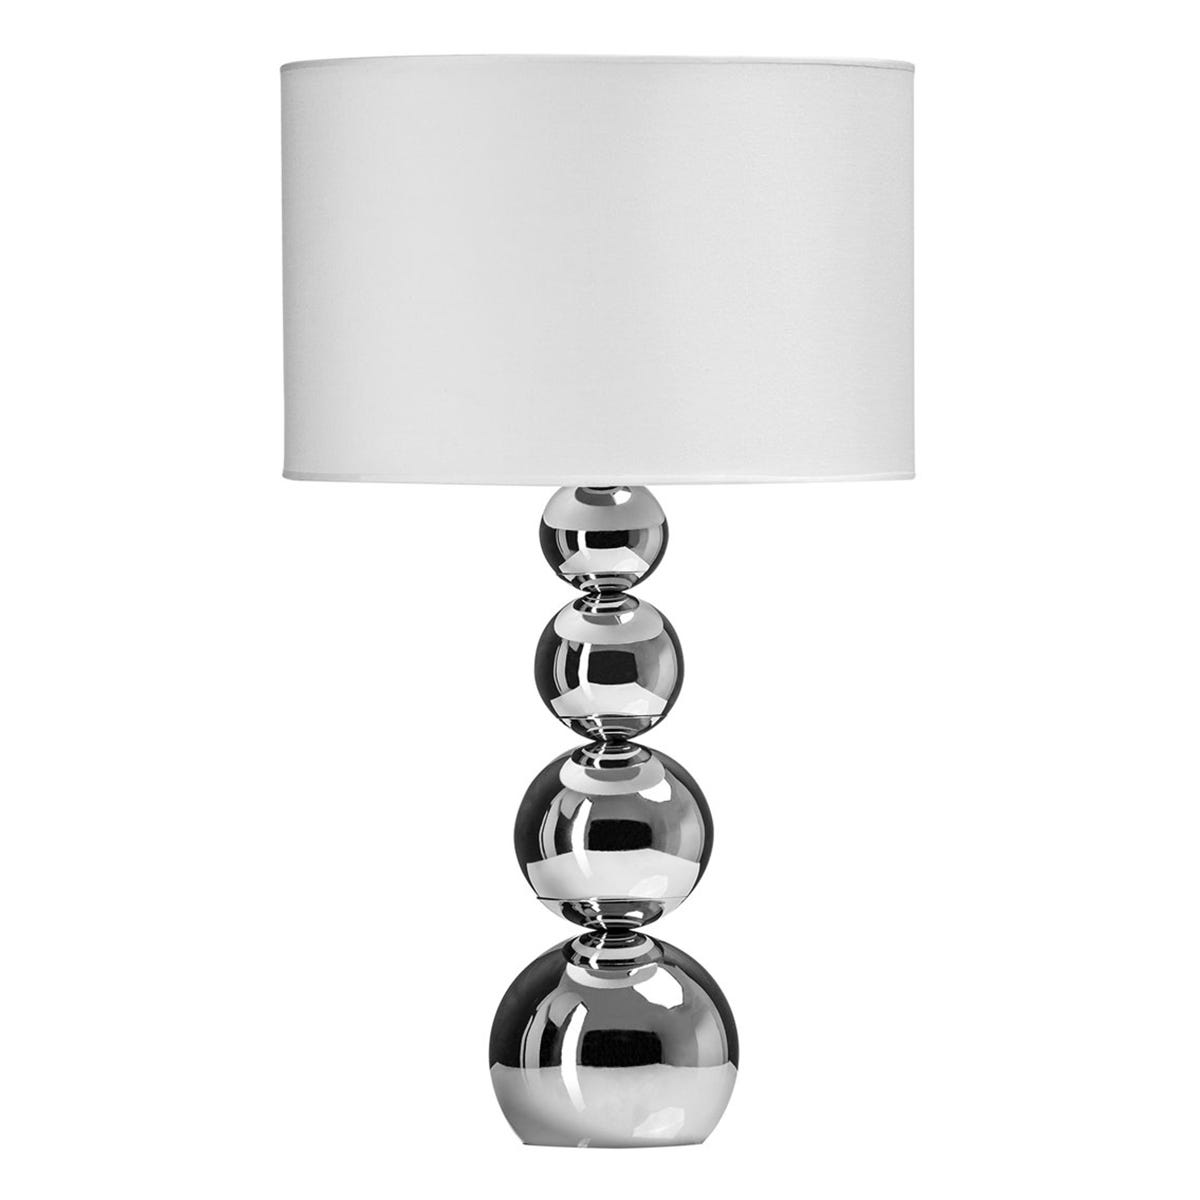 Premier Housewares Cameo Touch Table Lamp with Chrome Iron Base & White Fabric Shade